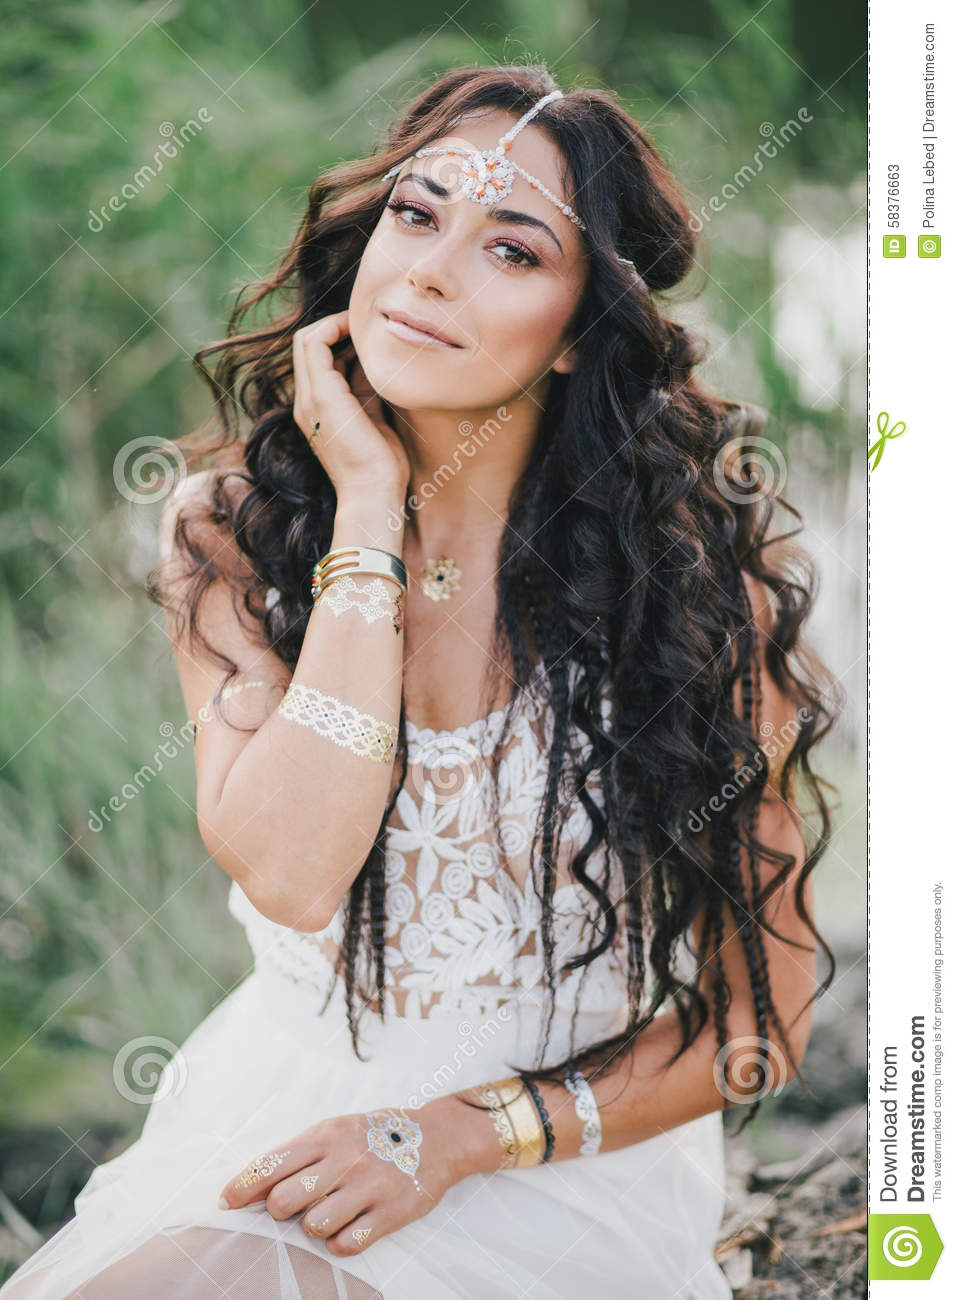 Beautiful Woman With Long Curly Hair Dressed In Boho Style